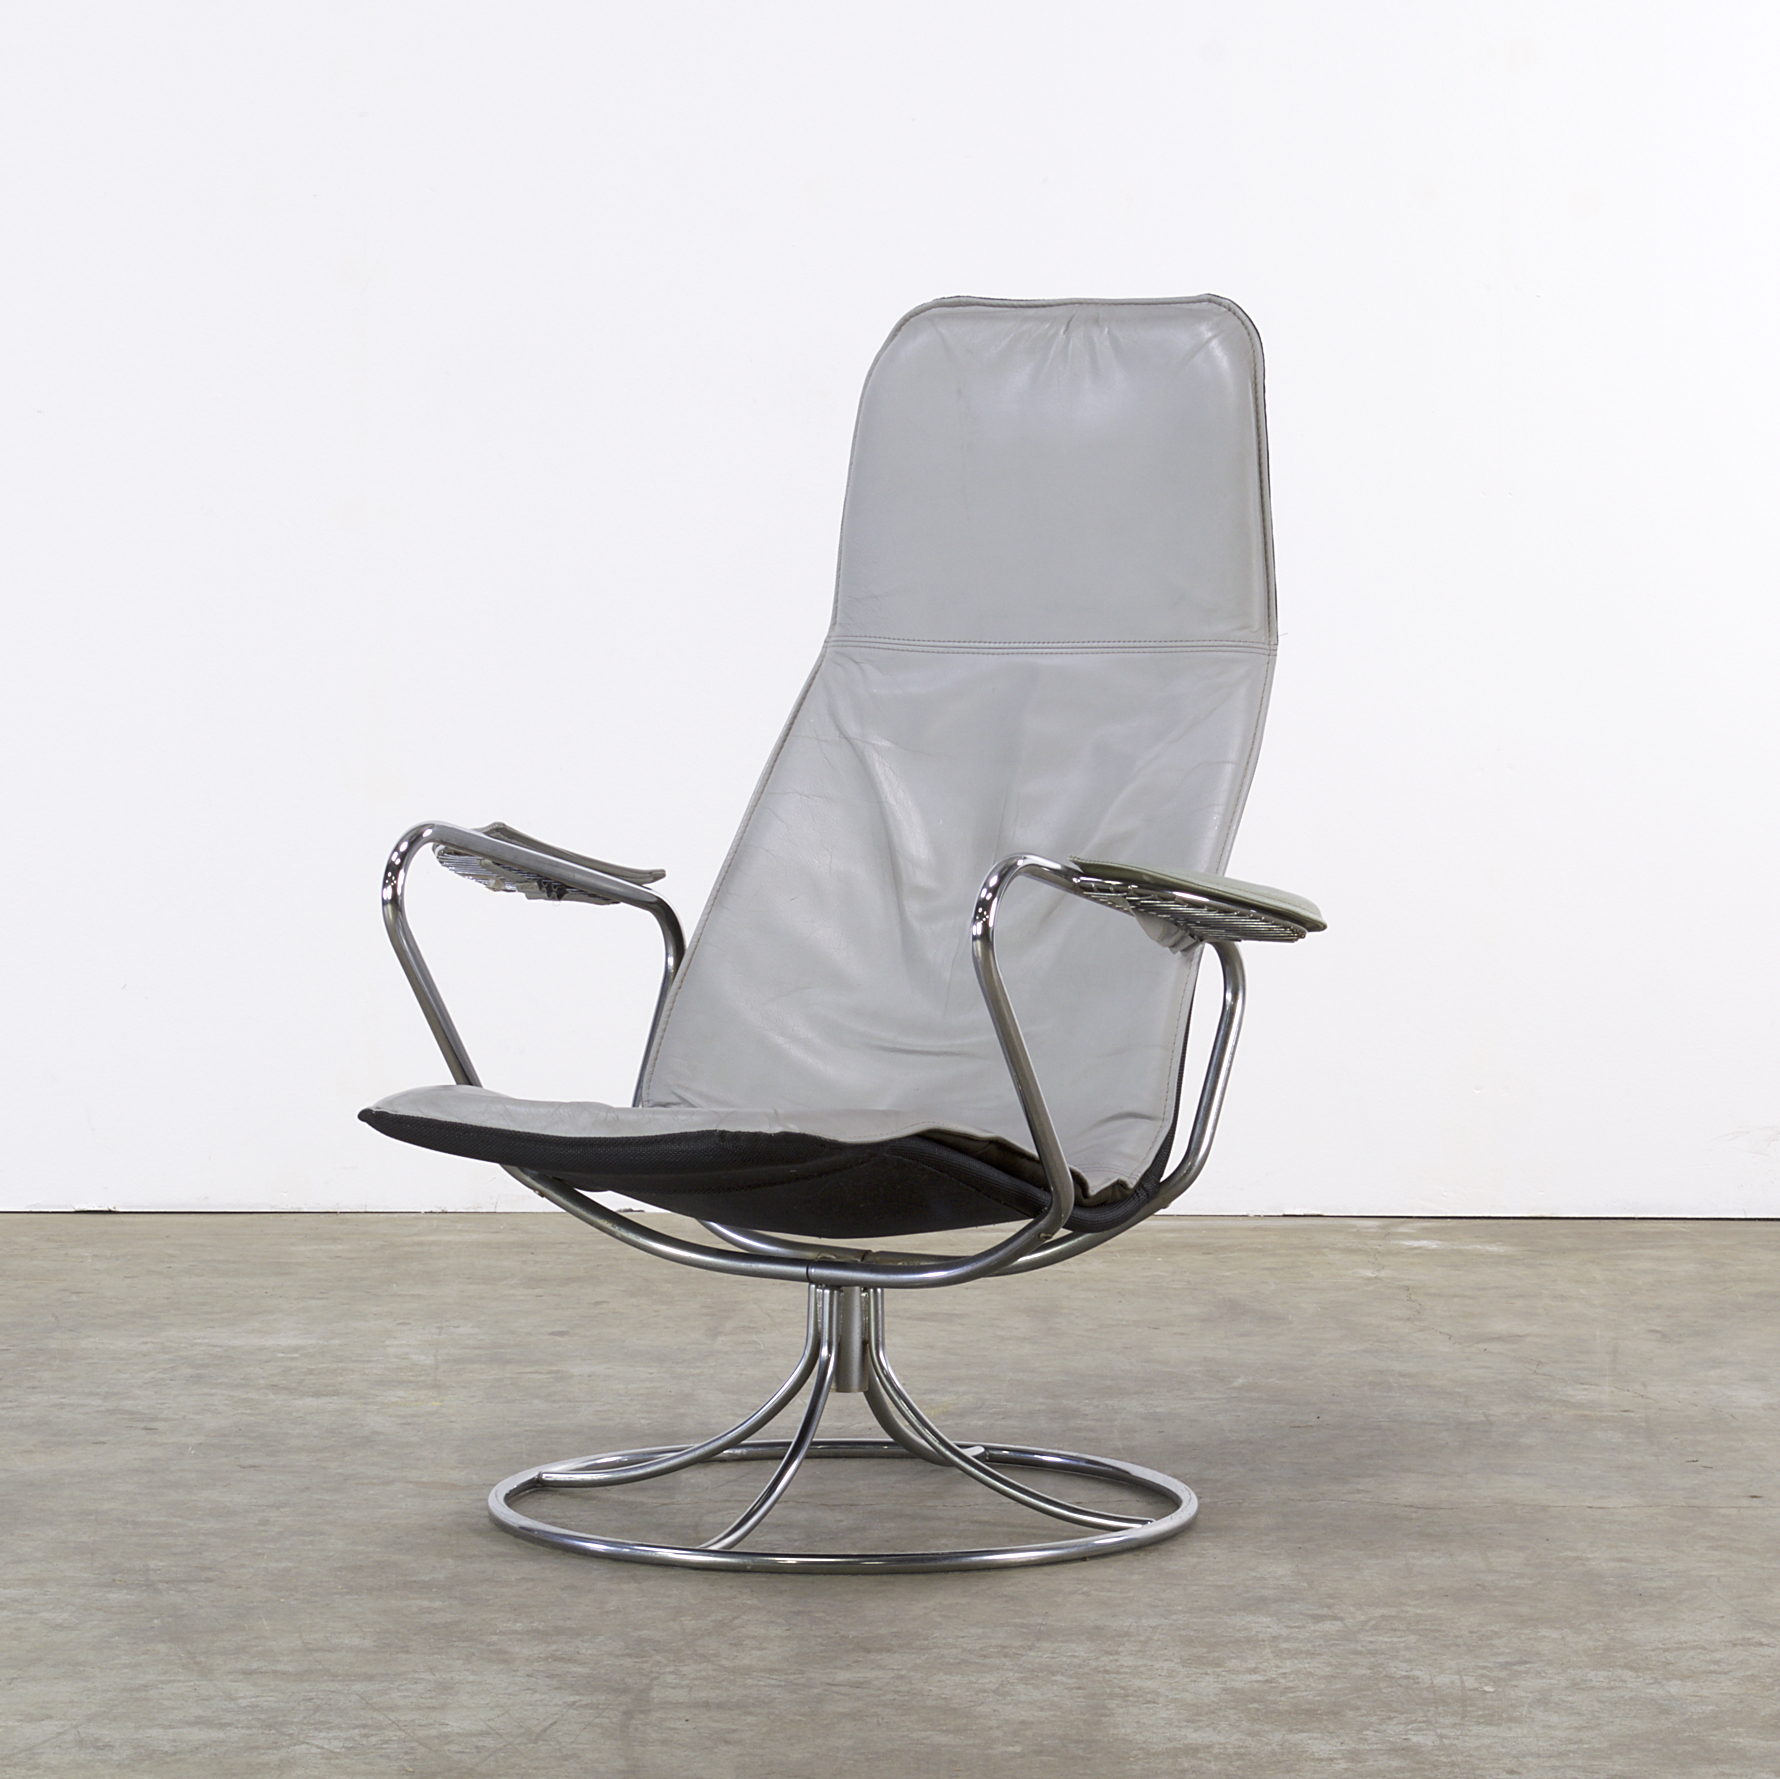 60s Design lounge chair chrome frame leather seat attr to Bruno